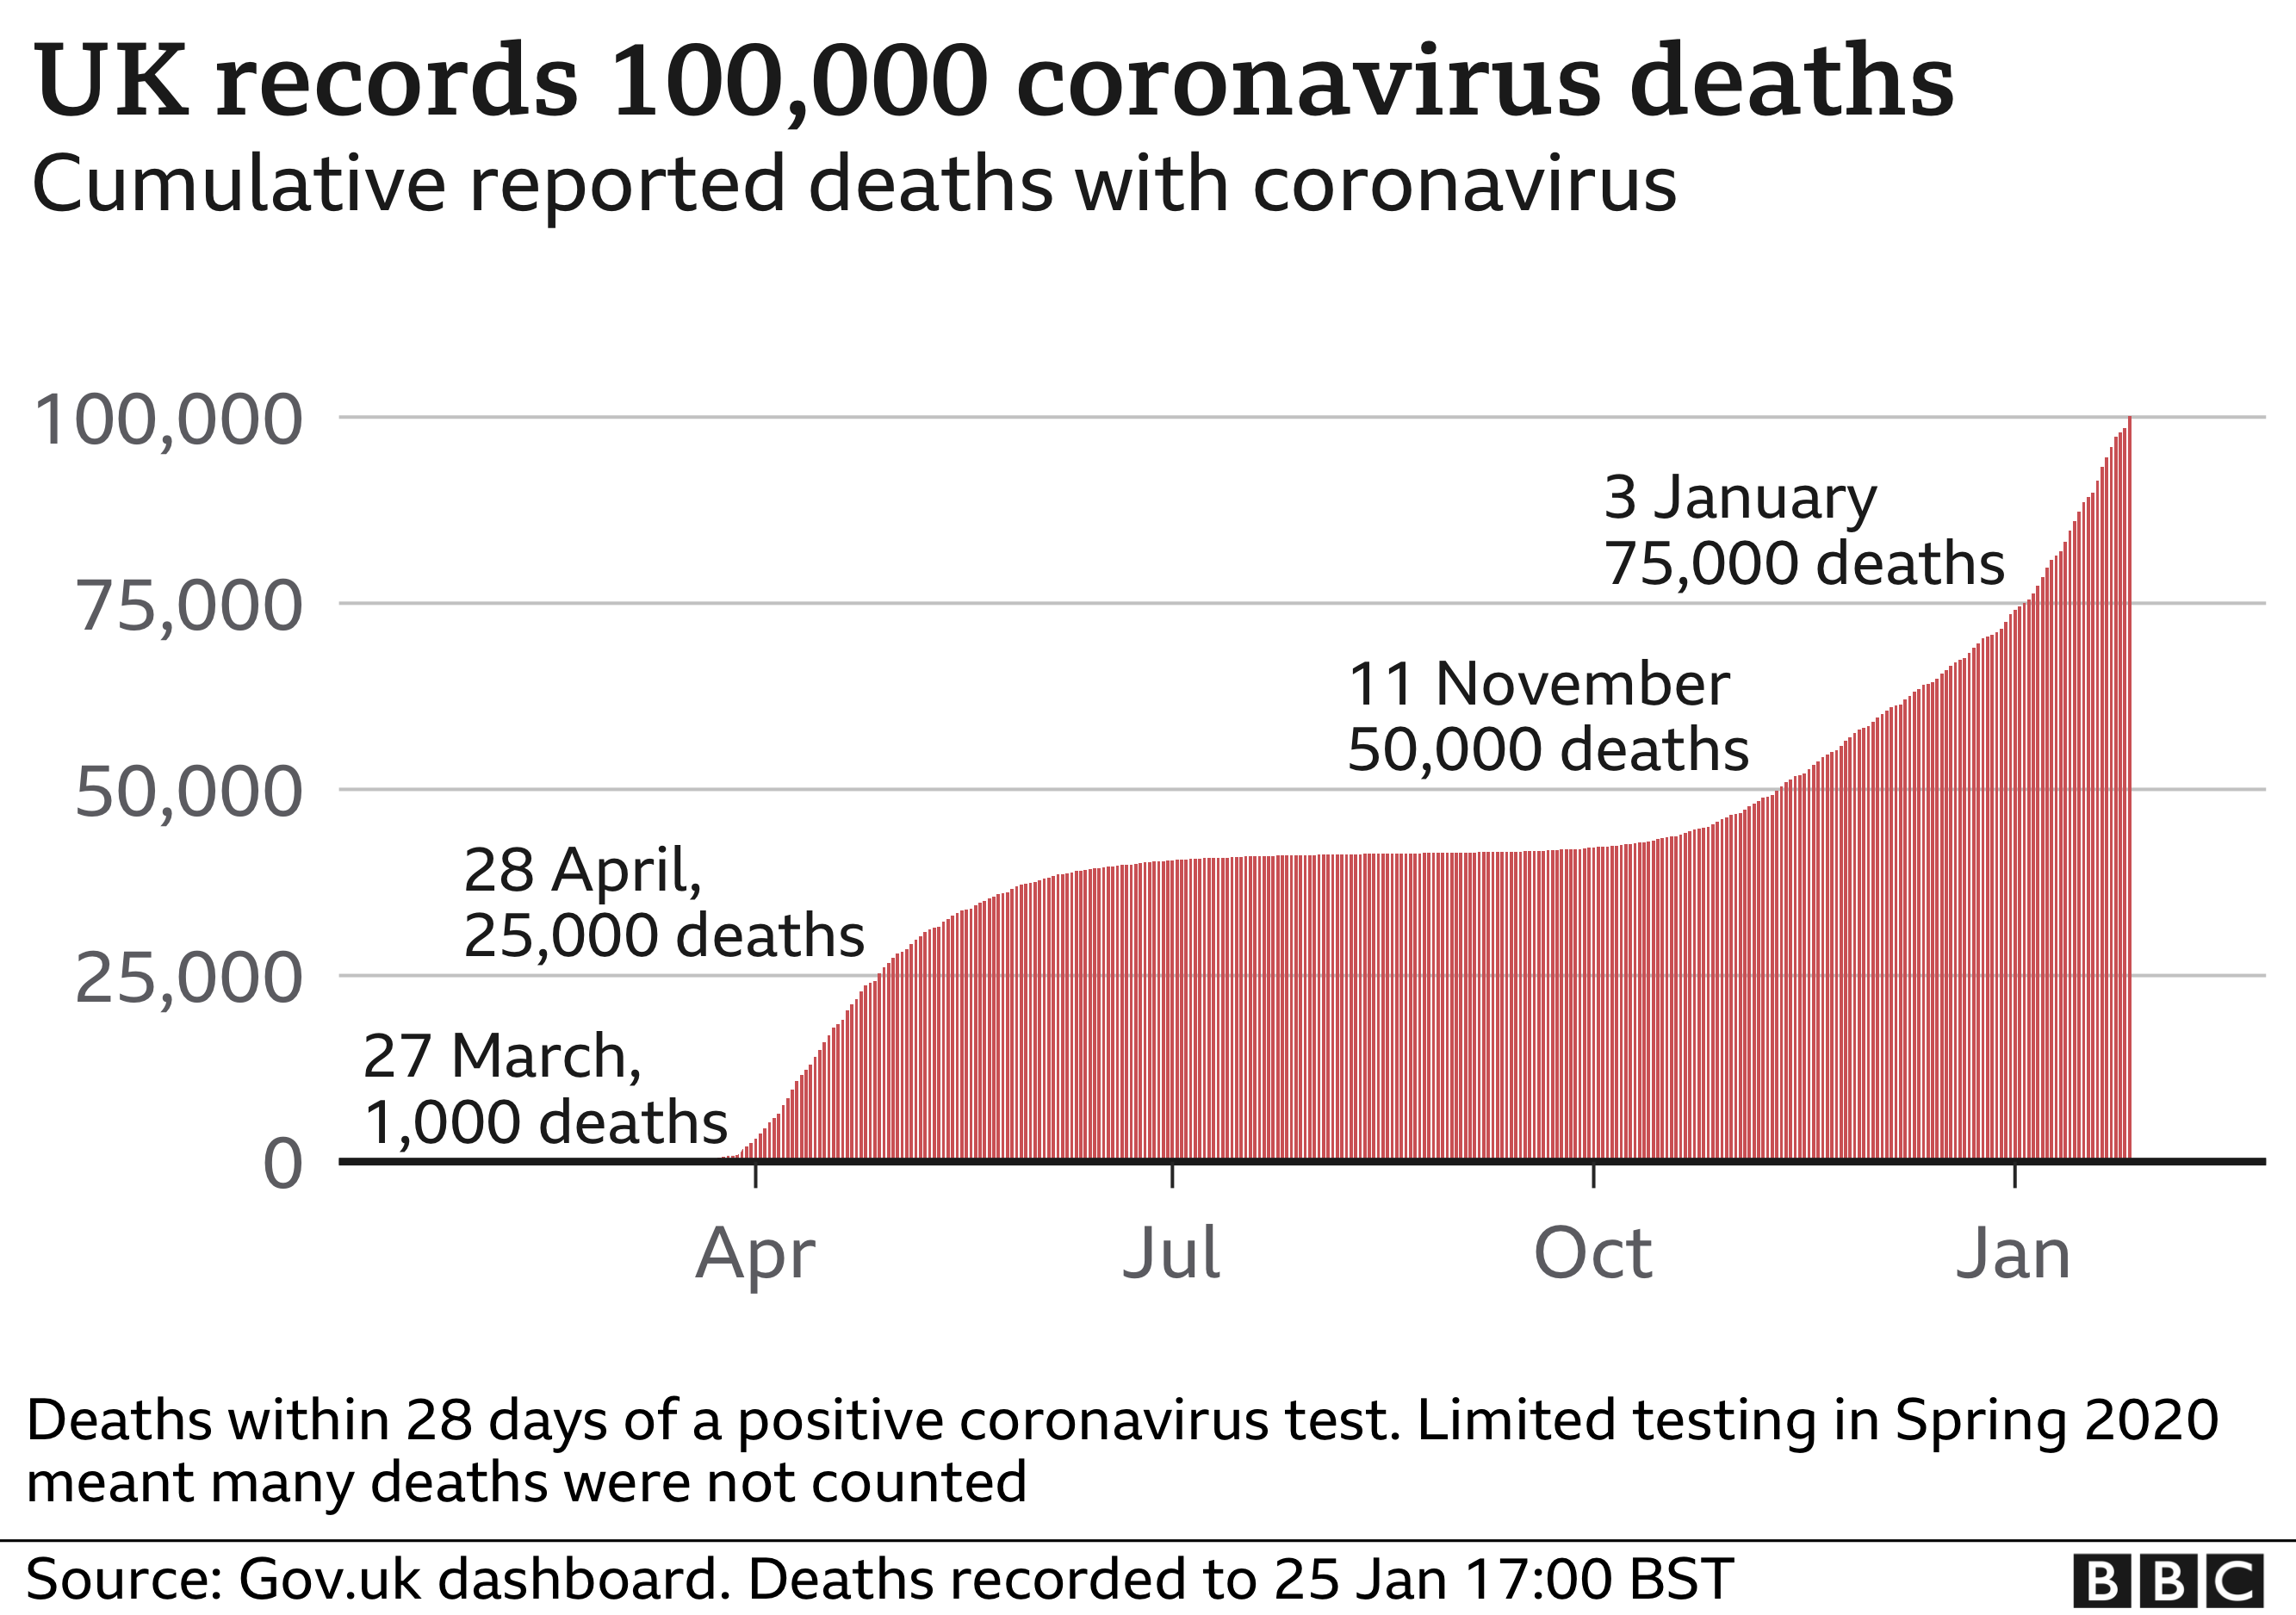 Graph showing the total number of deaths in the UK with coronavirus